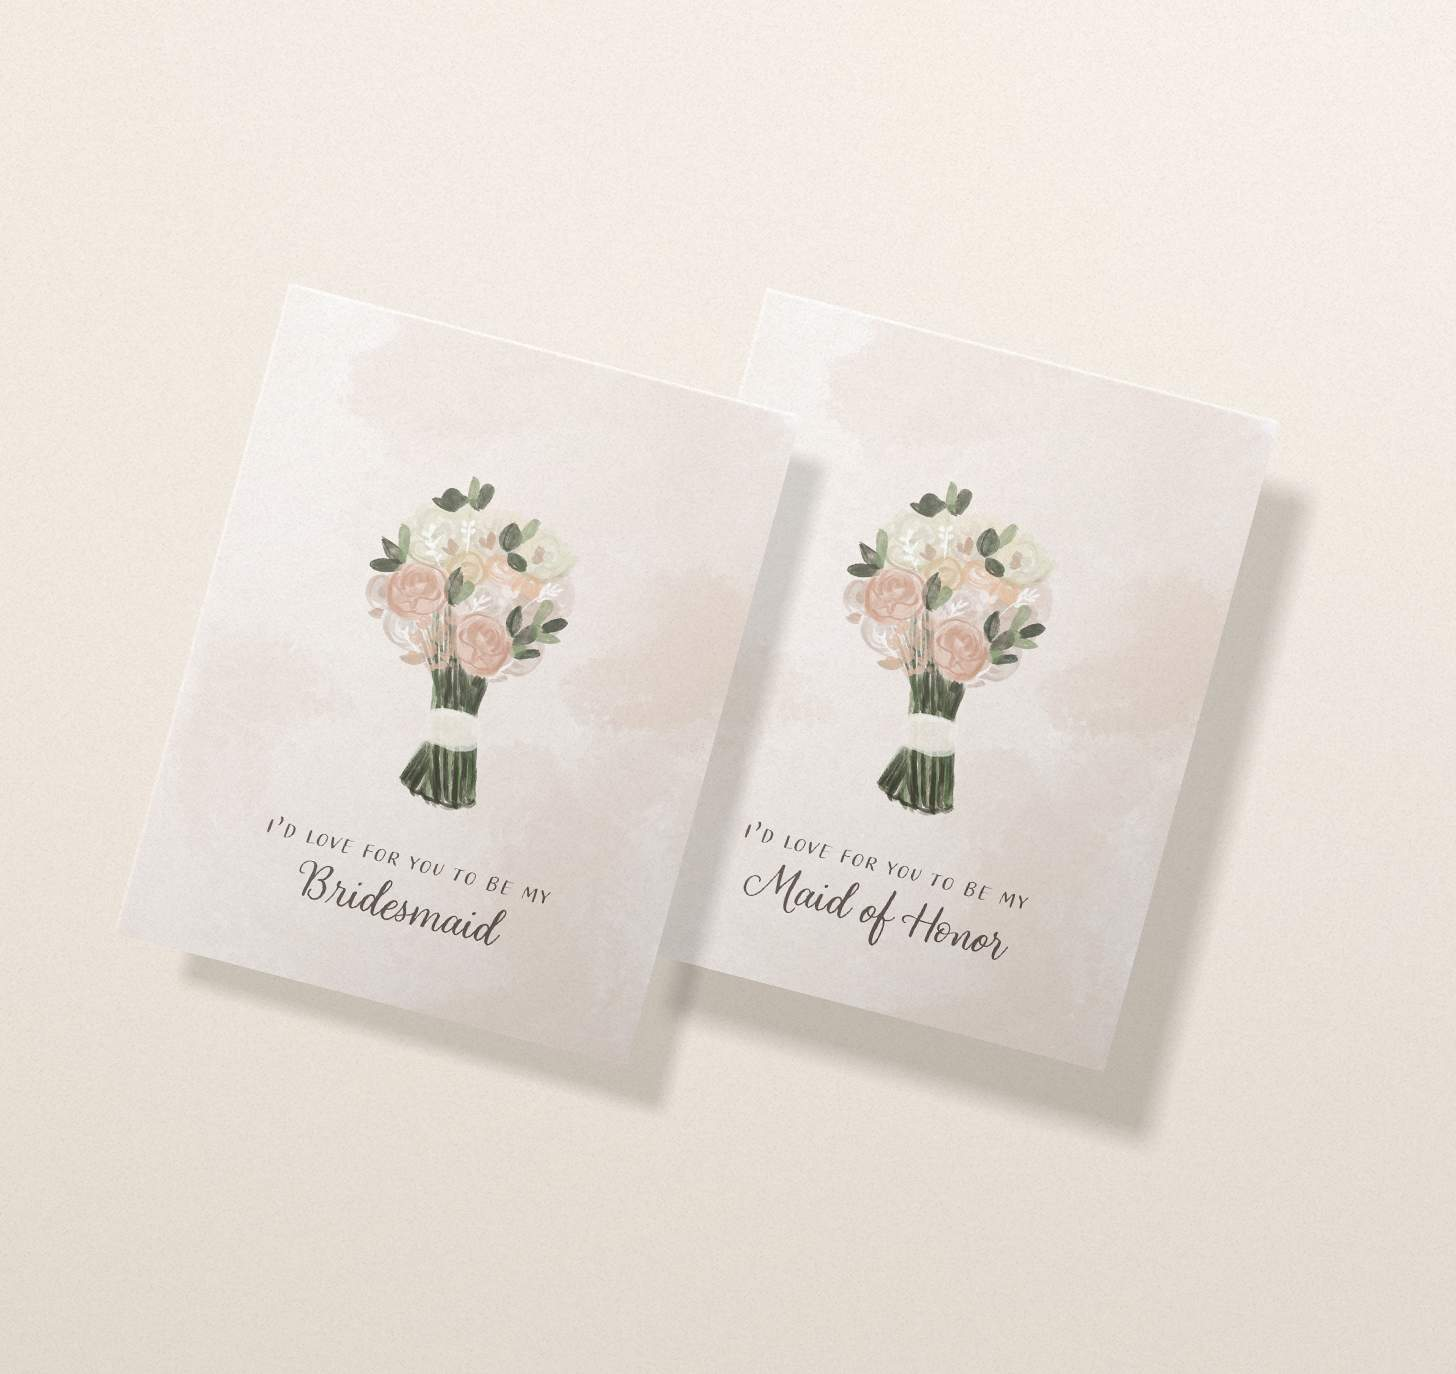 Two overlapping wedding invitation cards with pink, white, and green flower bouquet designs